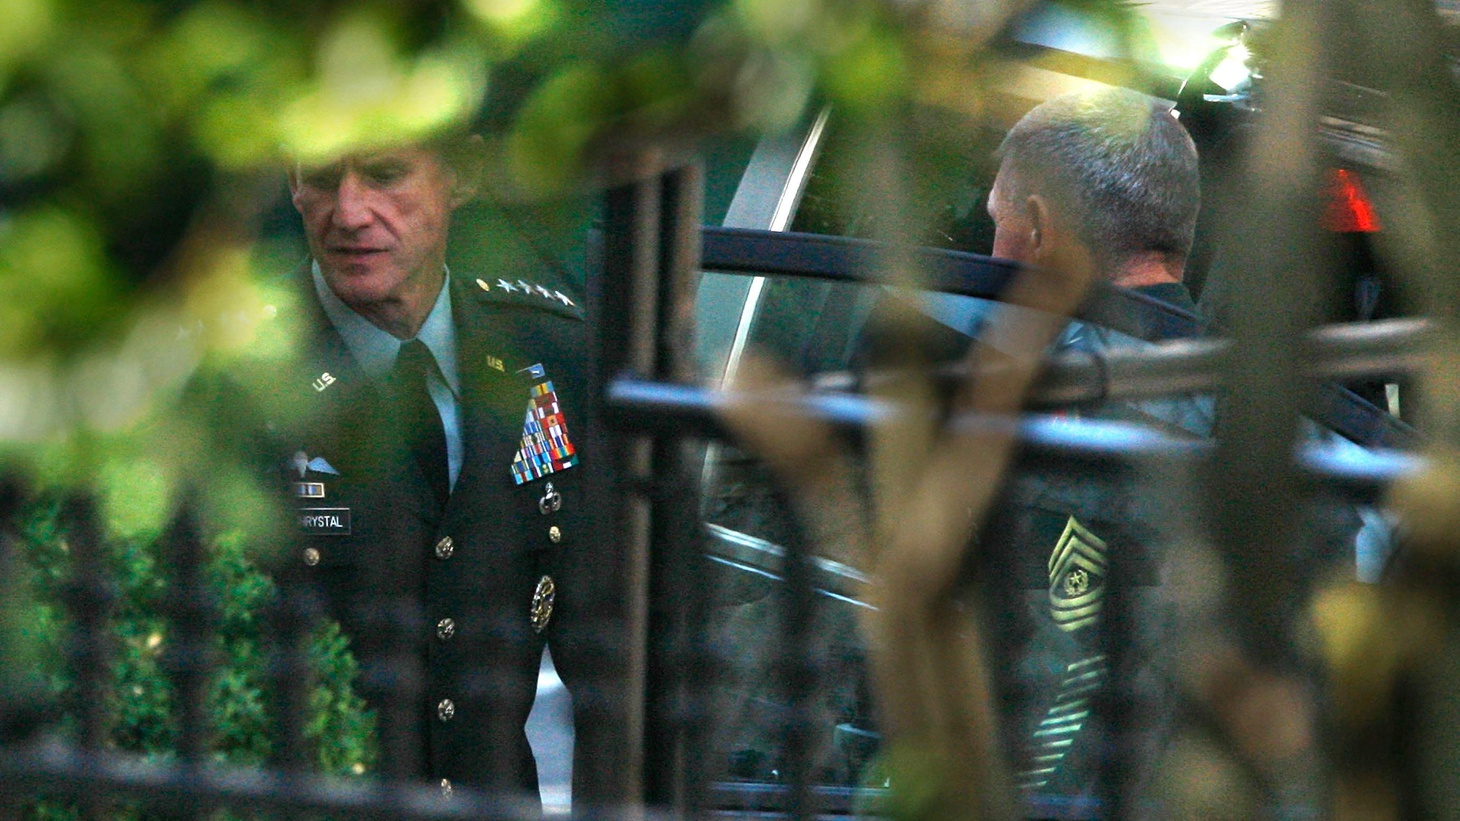 President Obama has replaced General Stanley McChrystal with General David Petraeus as US commander in Afghanistan.  The President said he admired McChrystal and that McChrystal was courteous to the Commander in Chief and faithfully carried out orders.  The problem was that article in Rolling Stone magazine... Also, the President, the judge and the moratorium on deep-water 